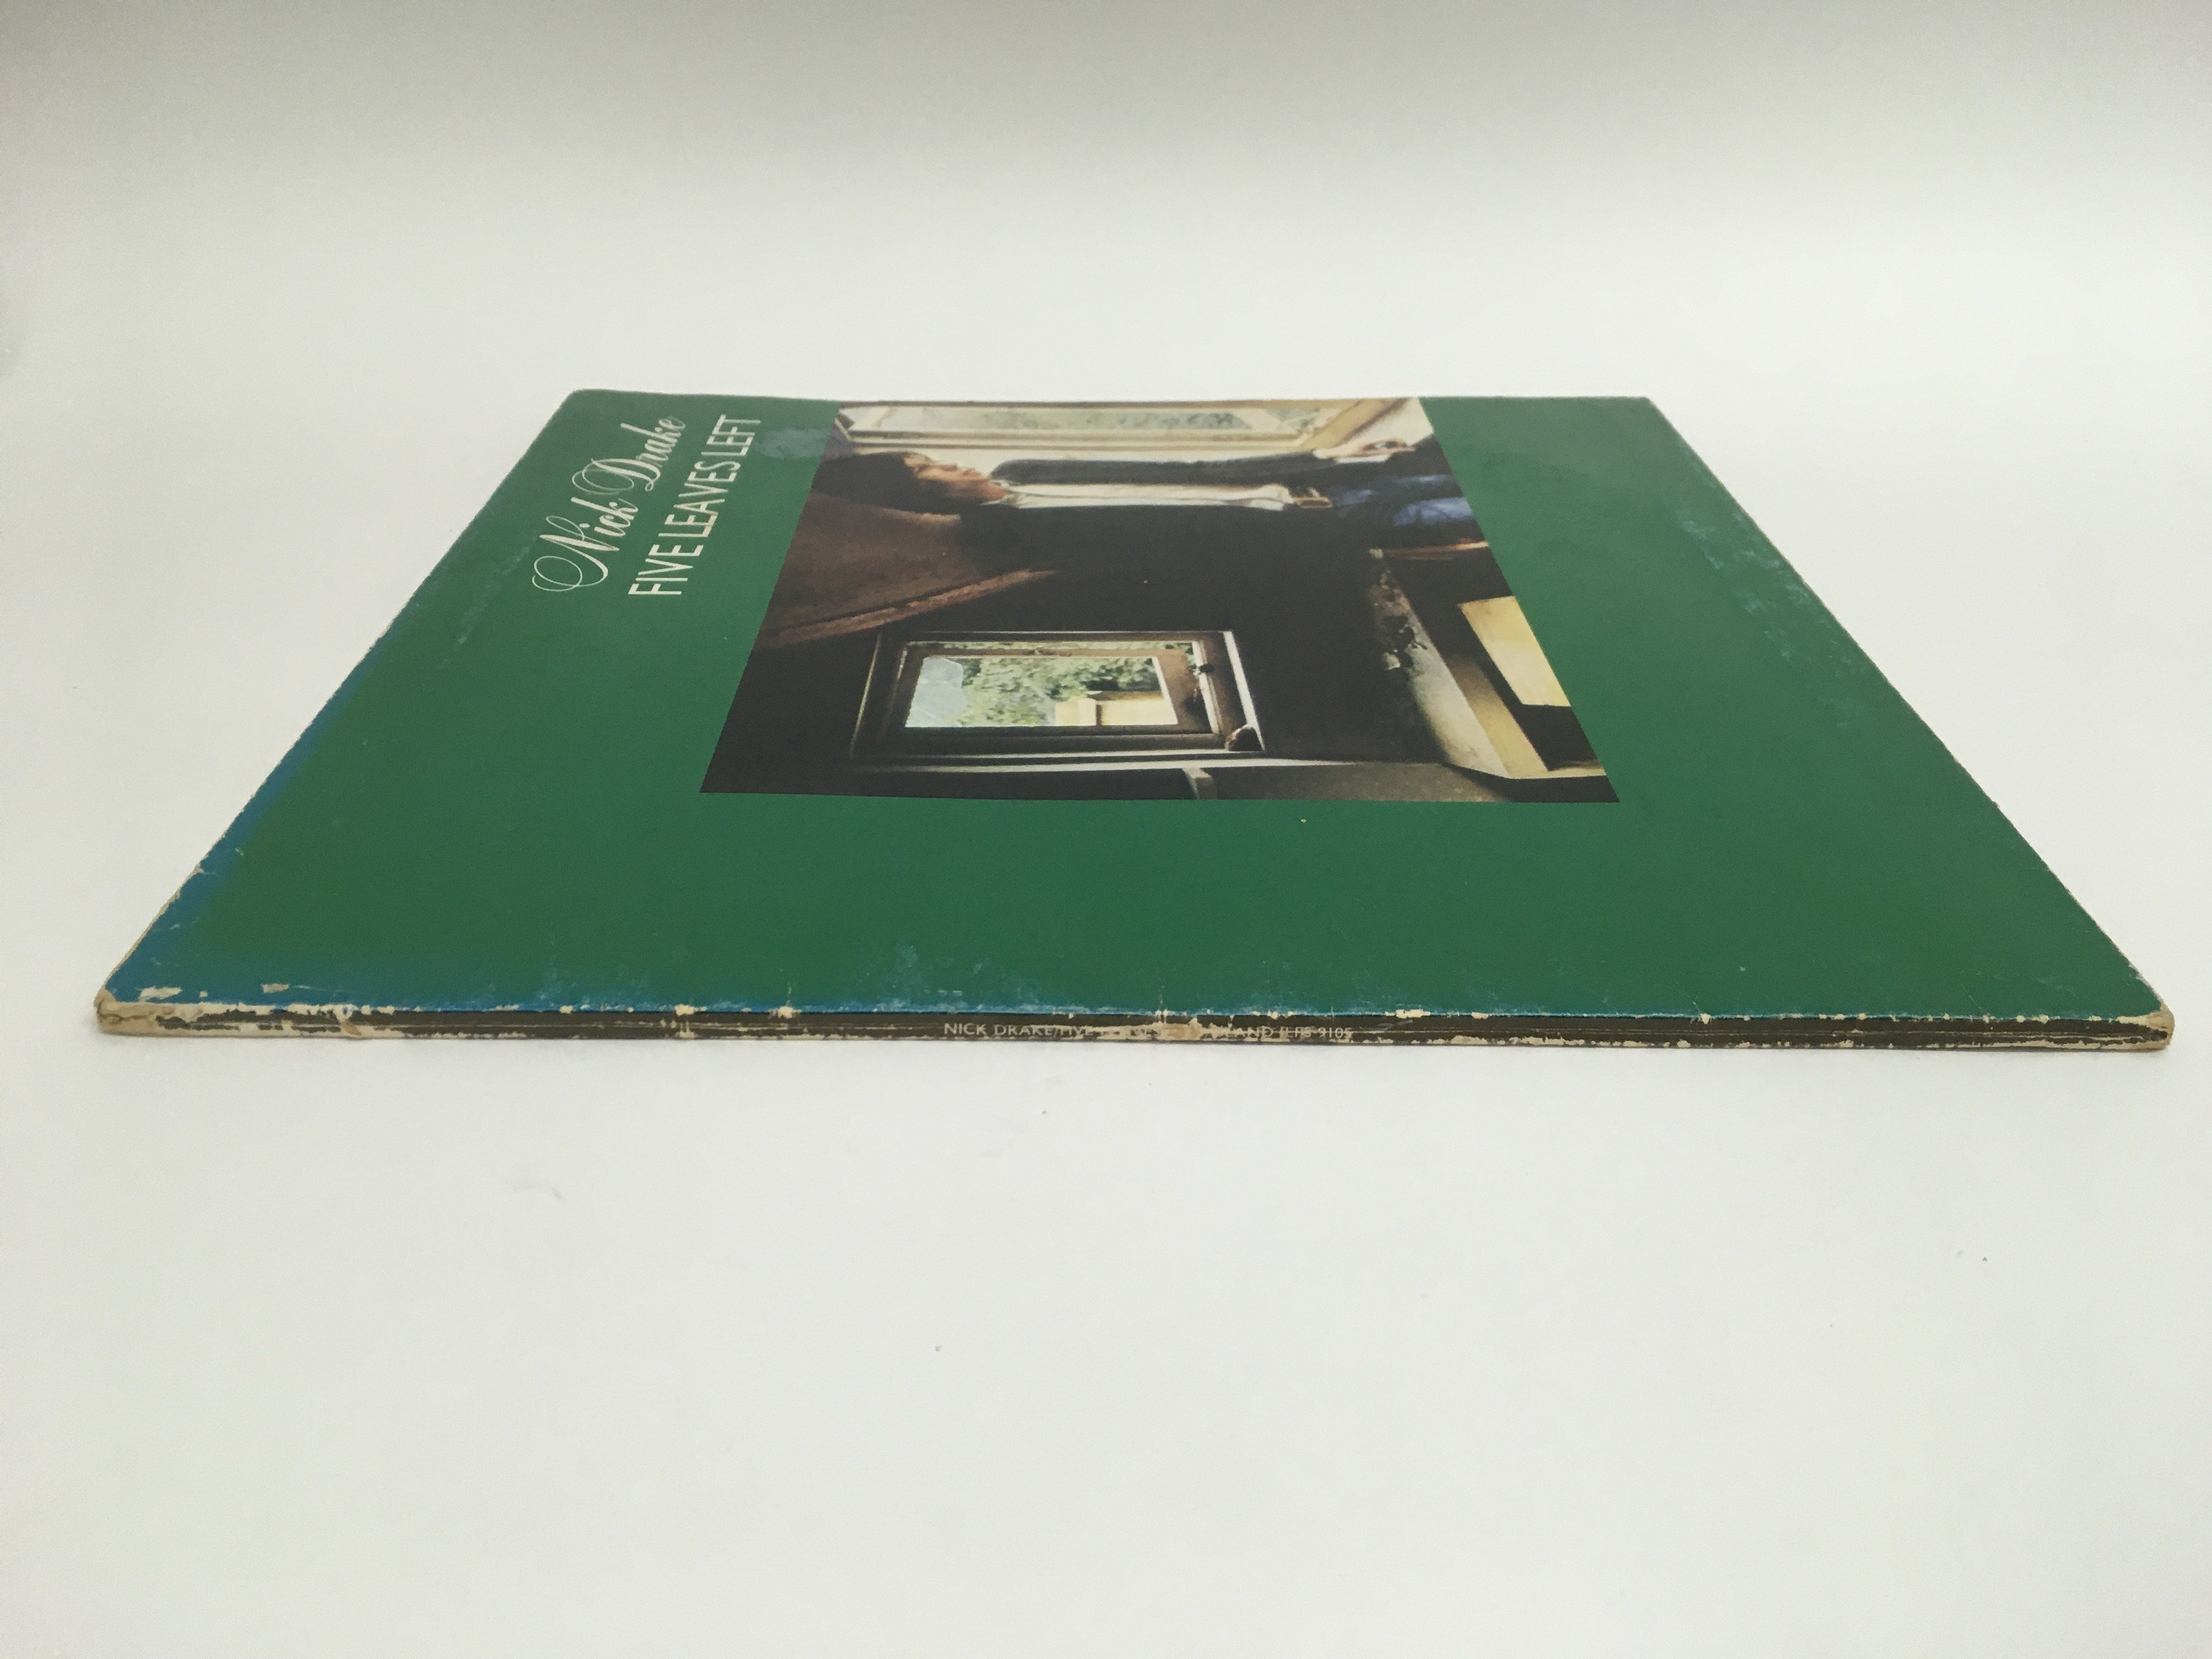 A first UK pressing of 'Five Leaves Left' by Nick - Image 6 of 6